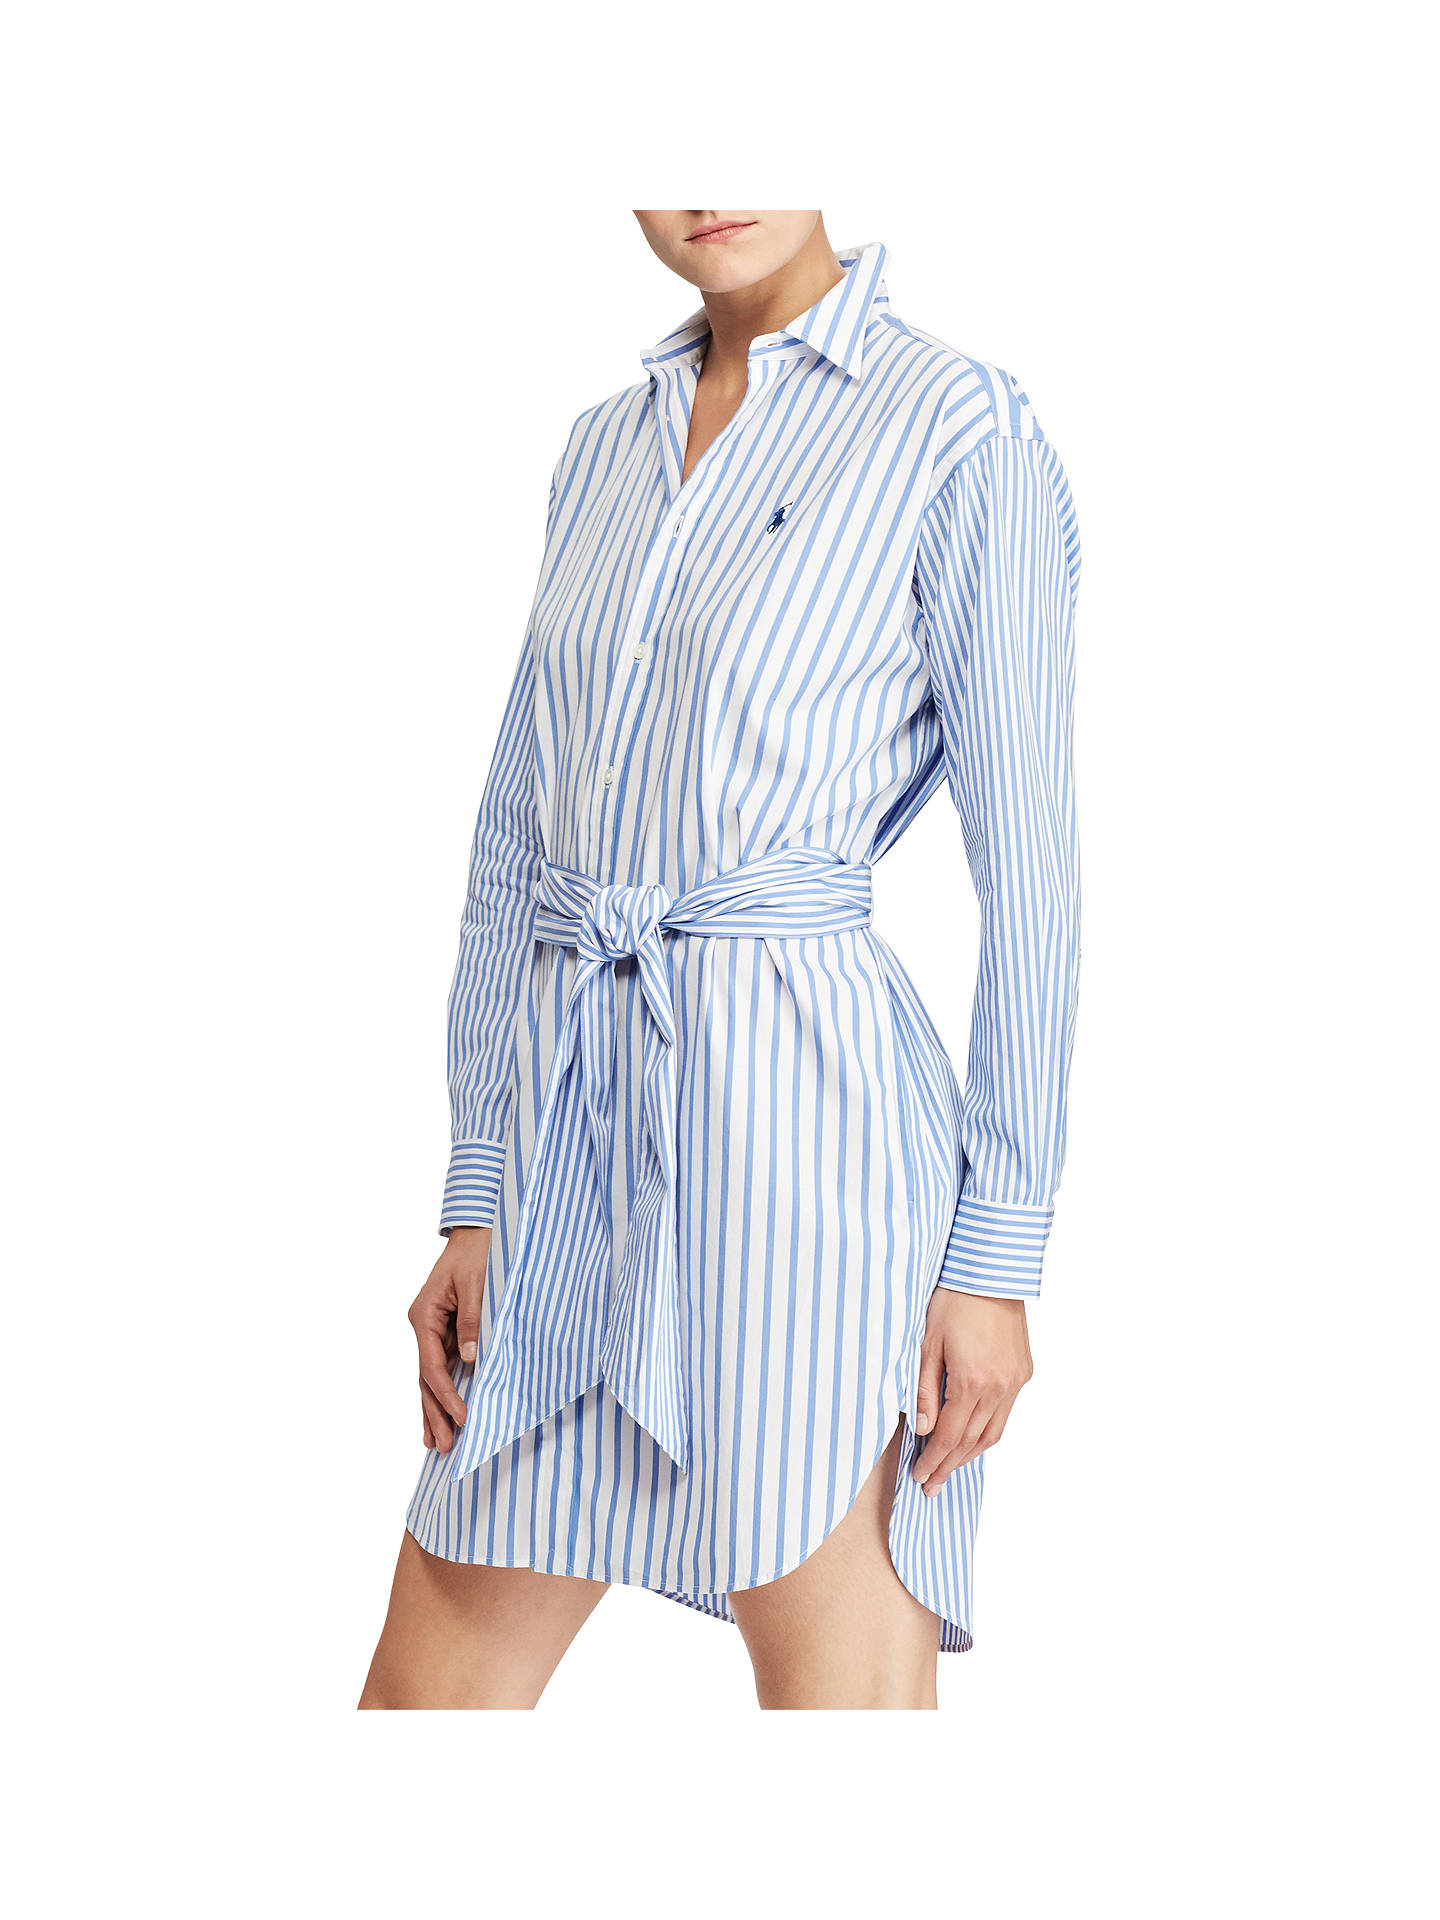 Lauren DressBluewhite Ralph Polo John Striped Shirt At Cotton eEbDH2I9YW